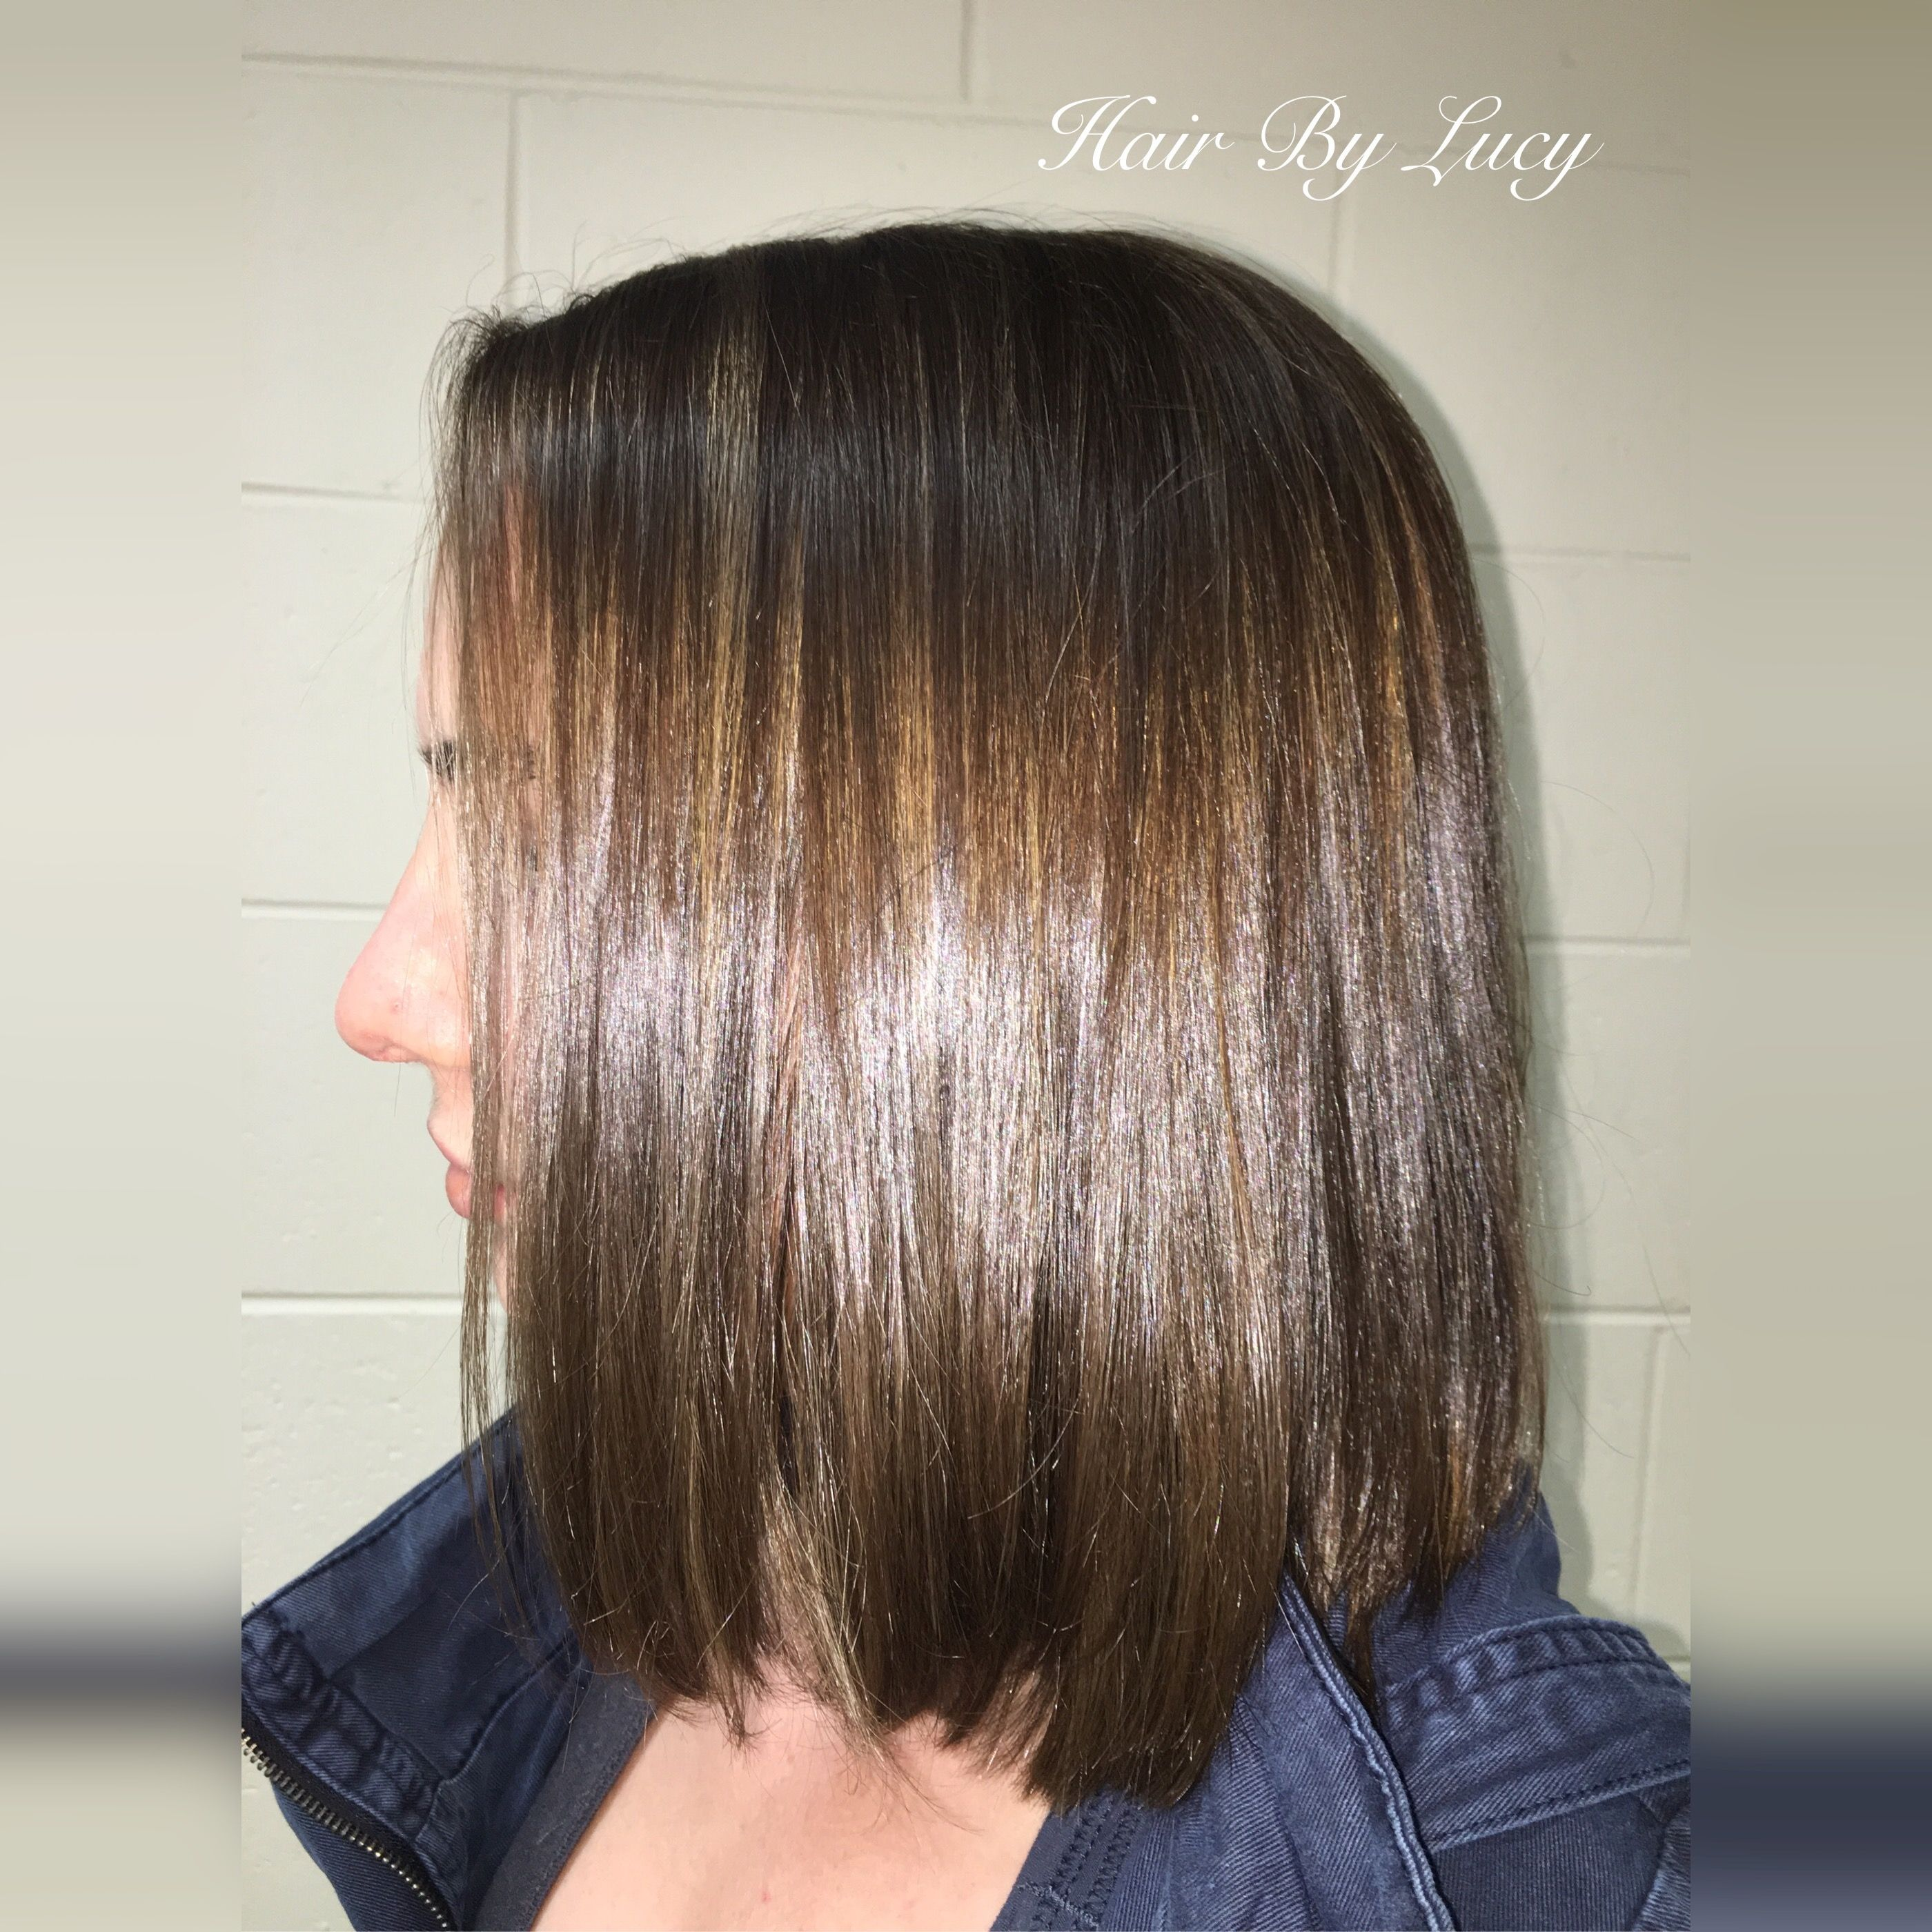 Half Head Foils Look Fab On Short Hair Too Highlights Hair Short Hair Styles Hair Styles